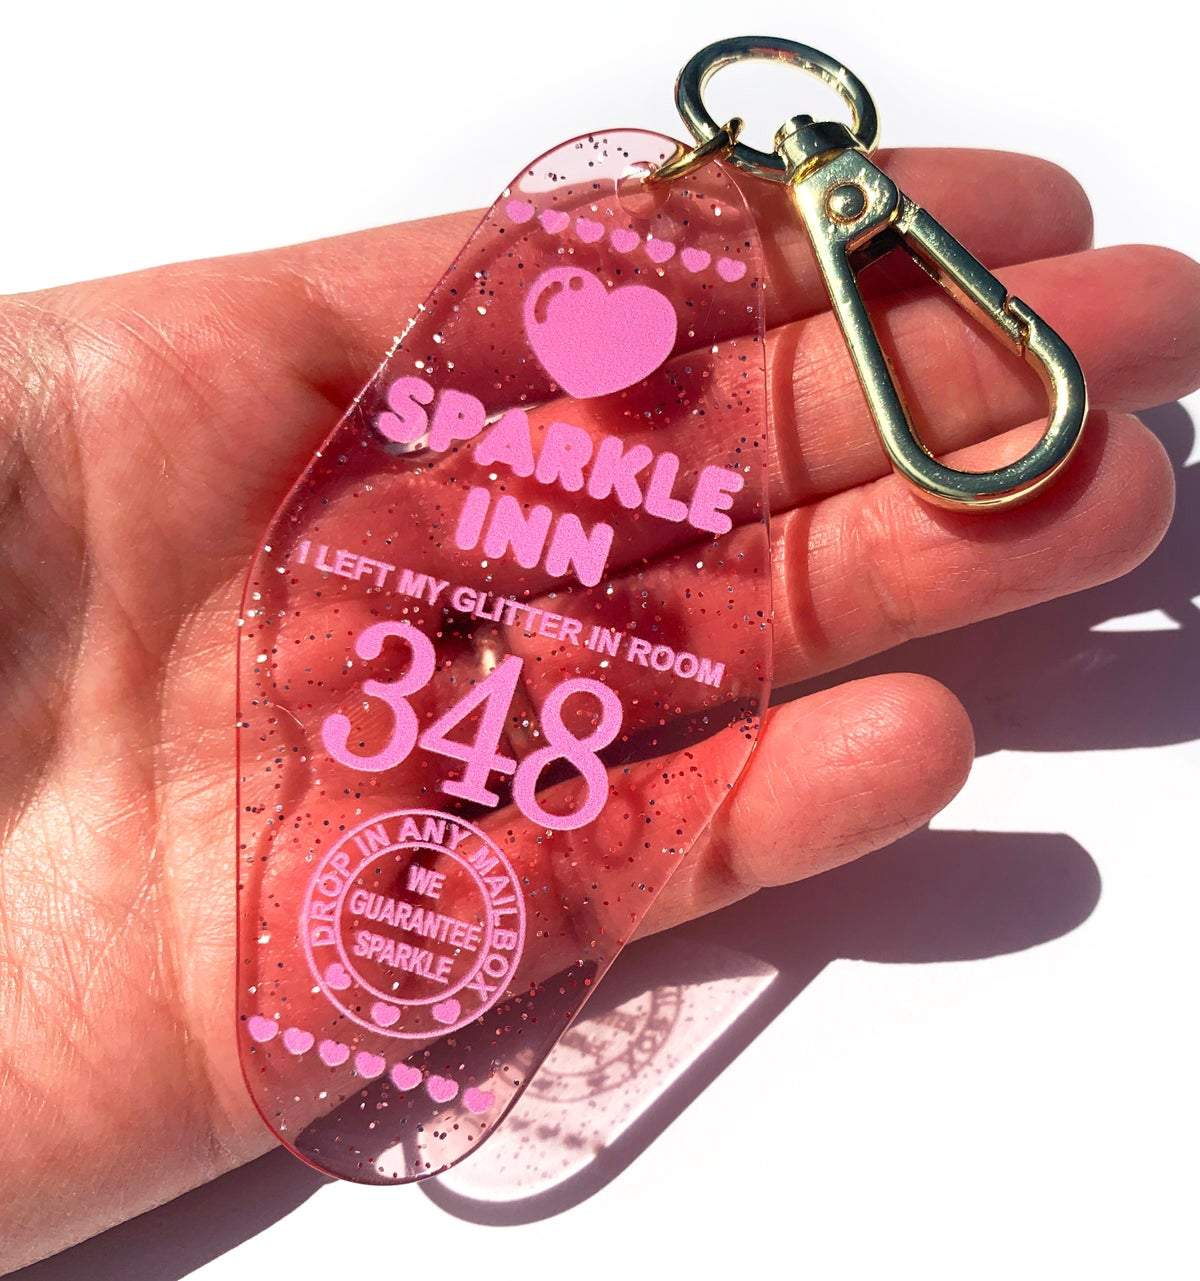 Image of Sparkle Inn Motel Bag Charm Keychain